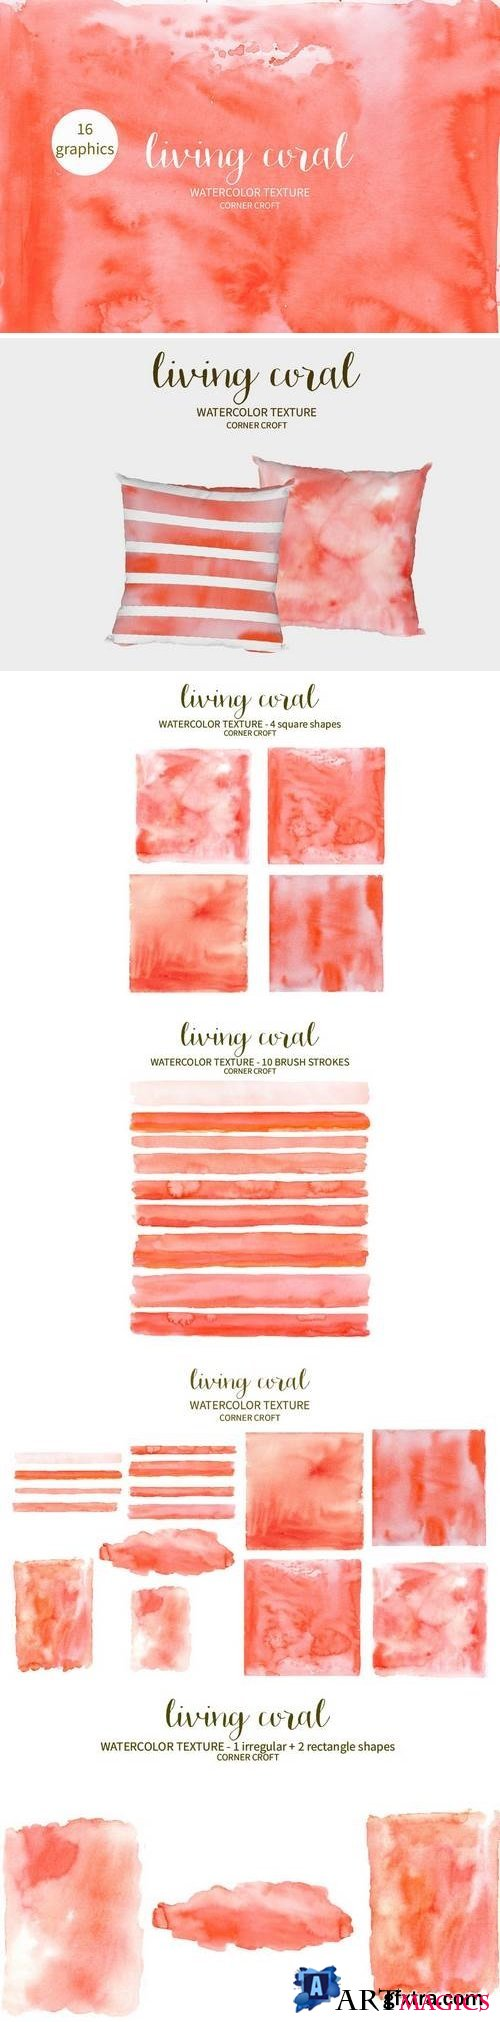 Watercolor texture living coral - 3397217